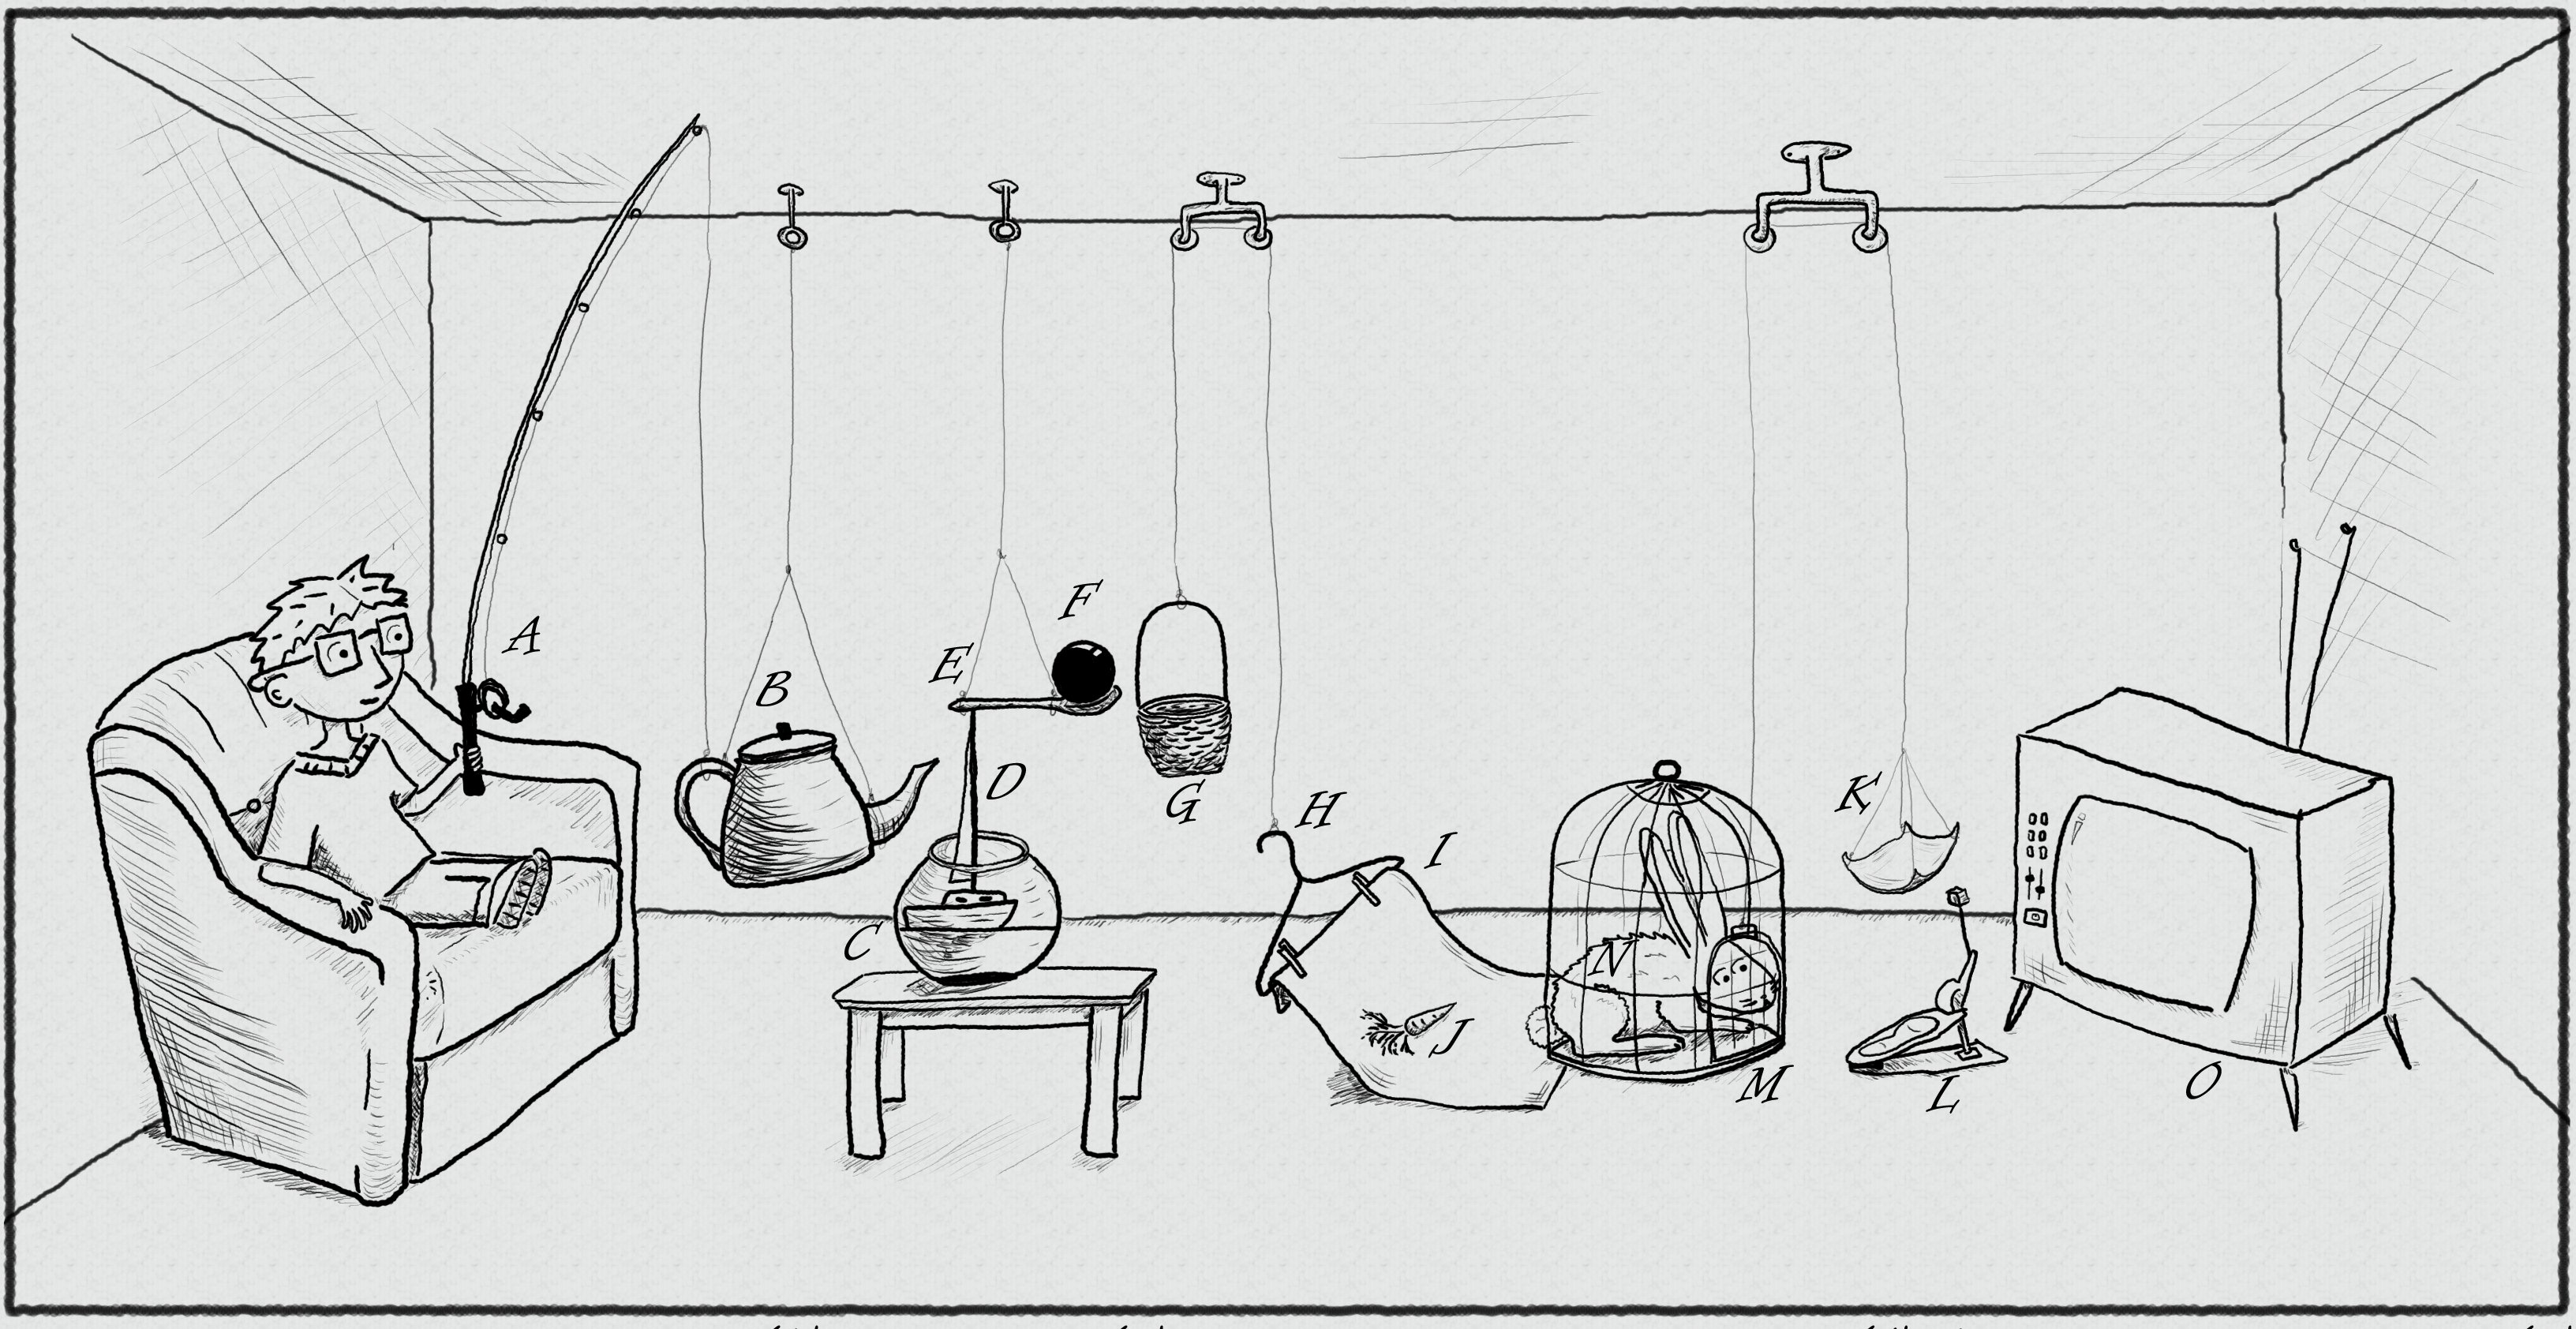 Simple Rube Goldberg Machine Drawings Sketch Coloring Page